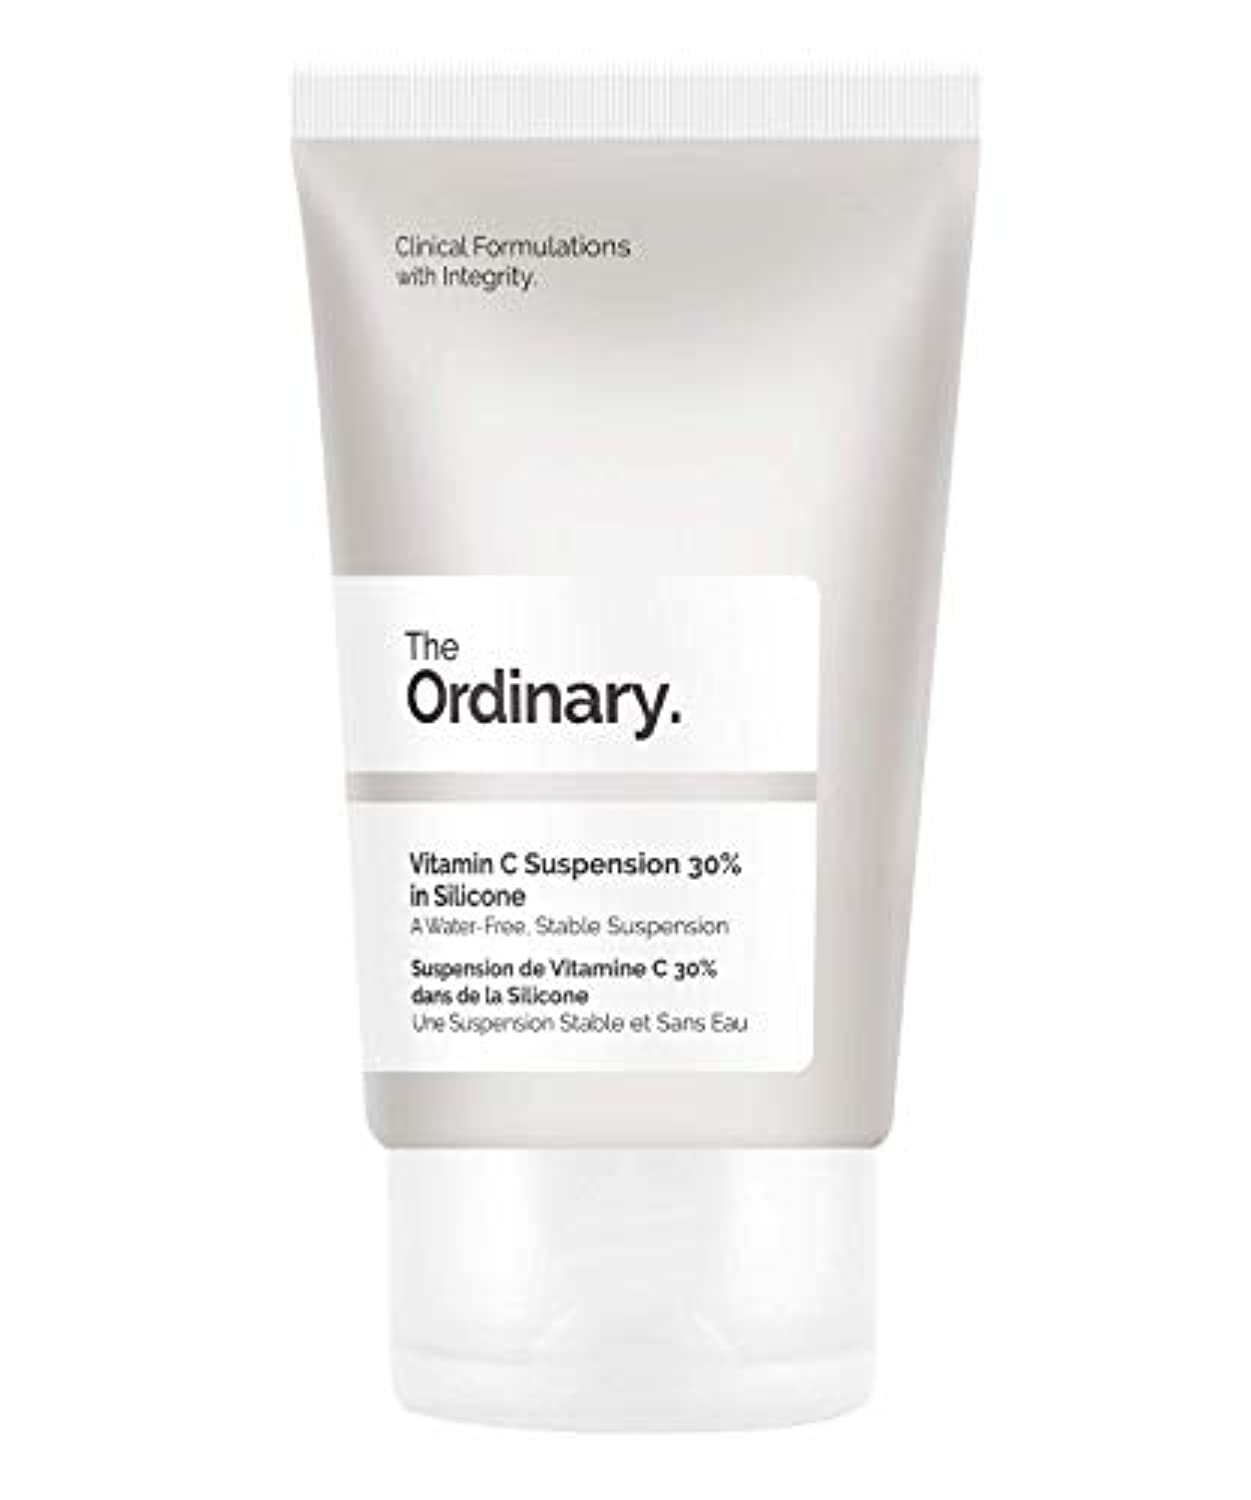 The Ordinary Vitamin C Suspension 30% in Silicone FULL SIZE 30ml